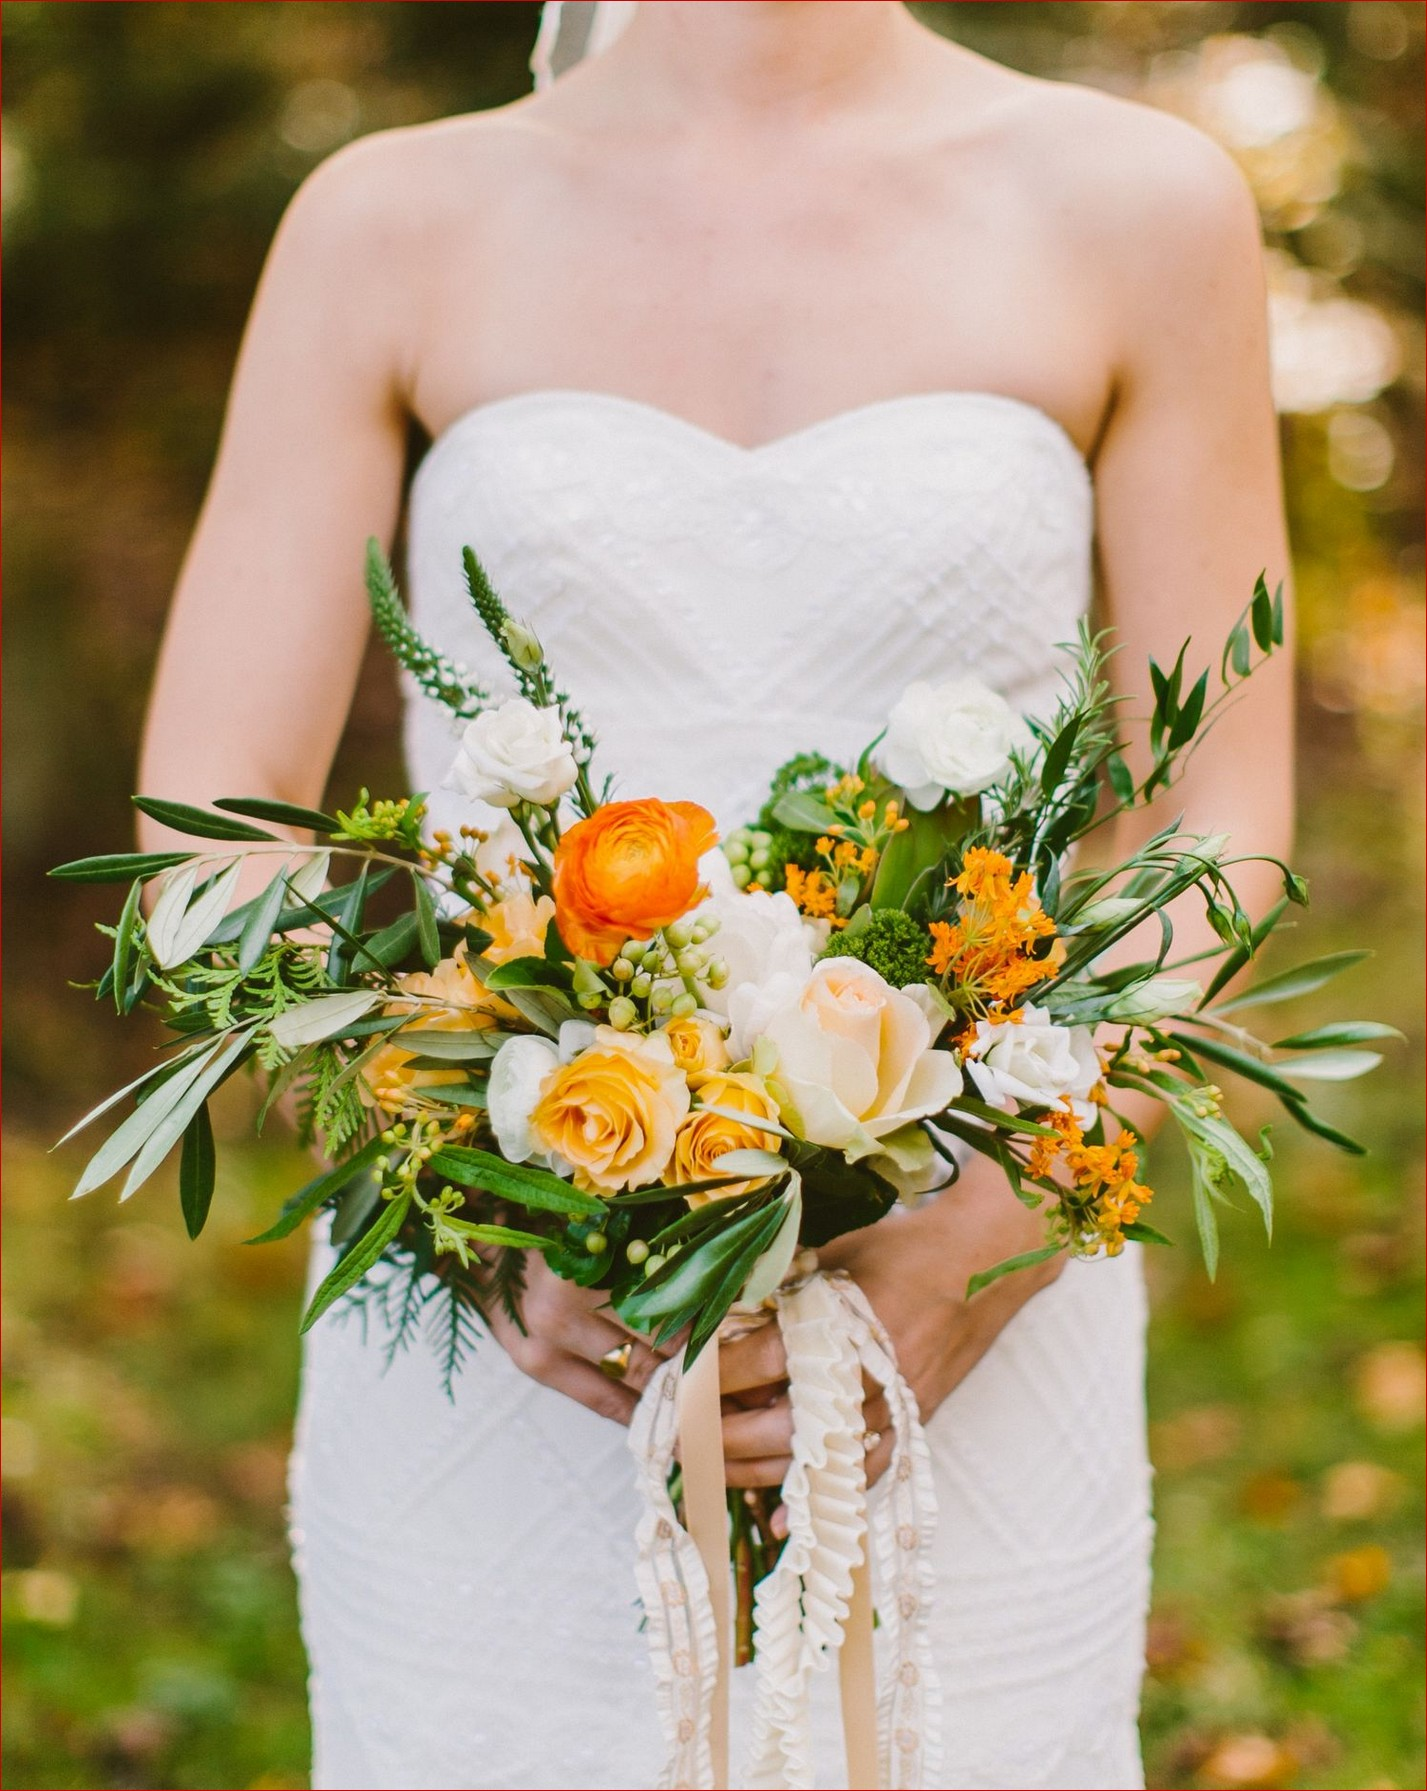 How to get the perfect wedding dress